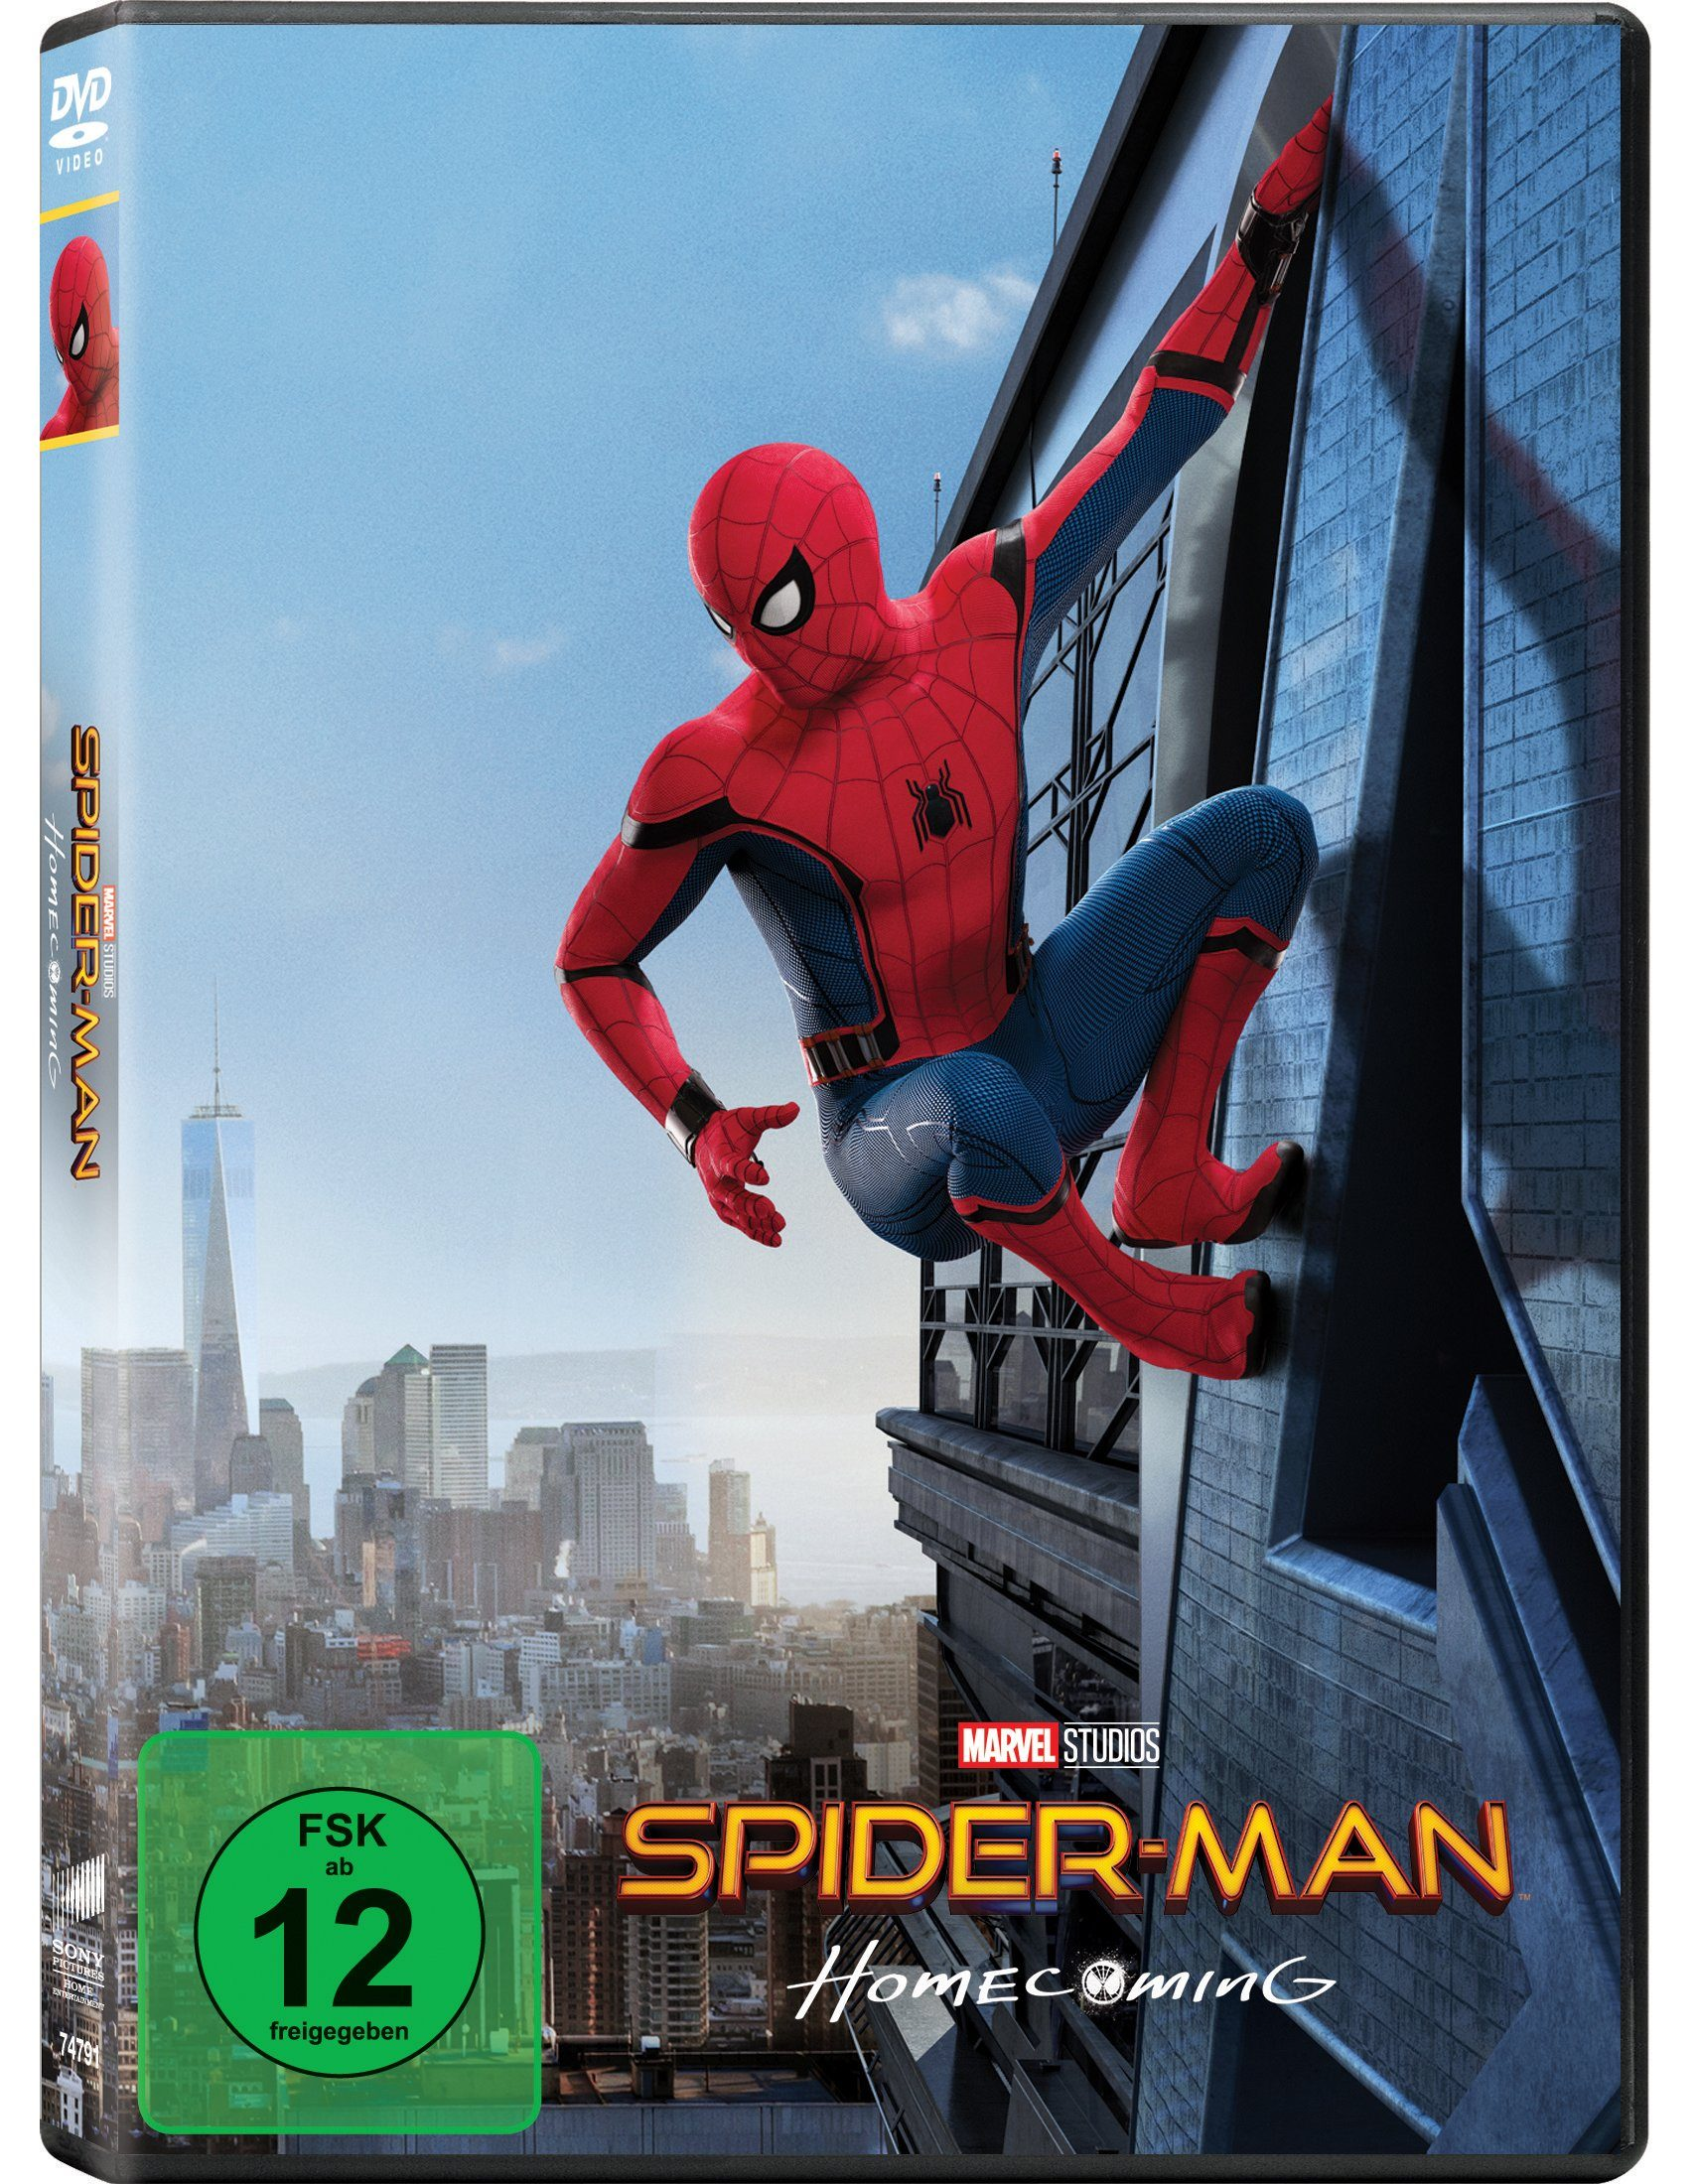 Sony Pictures DVD »Spider-Man: Homecoming«